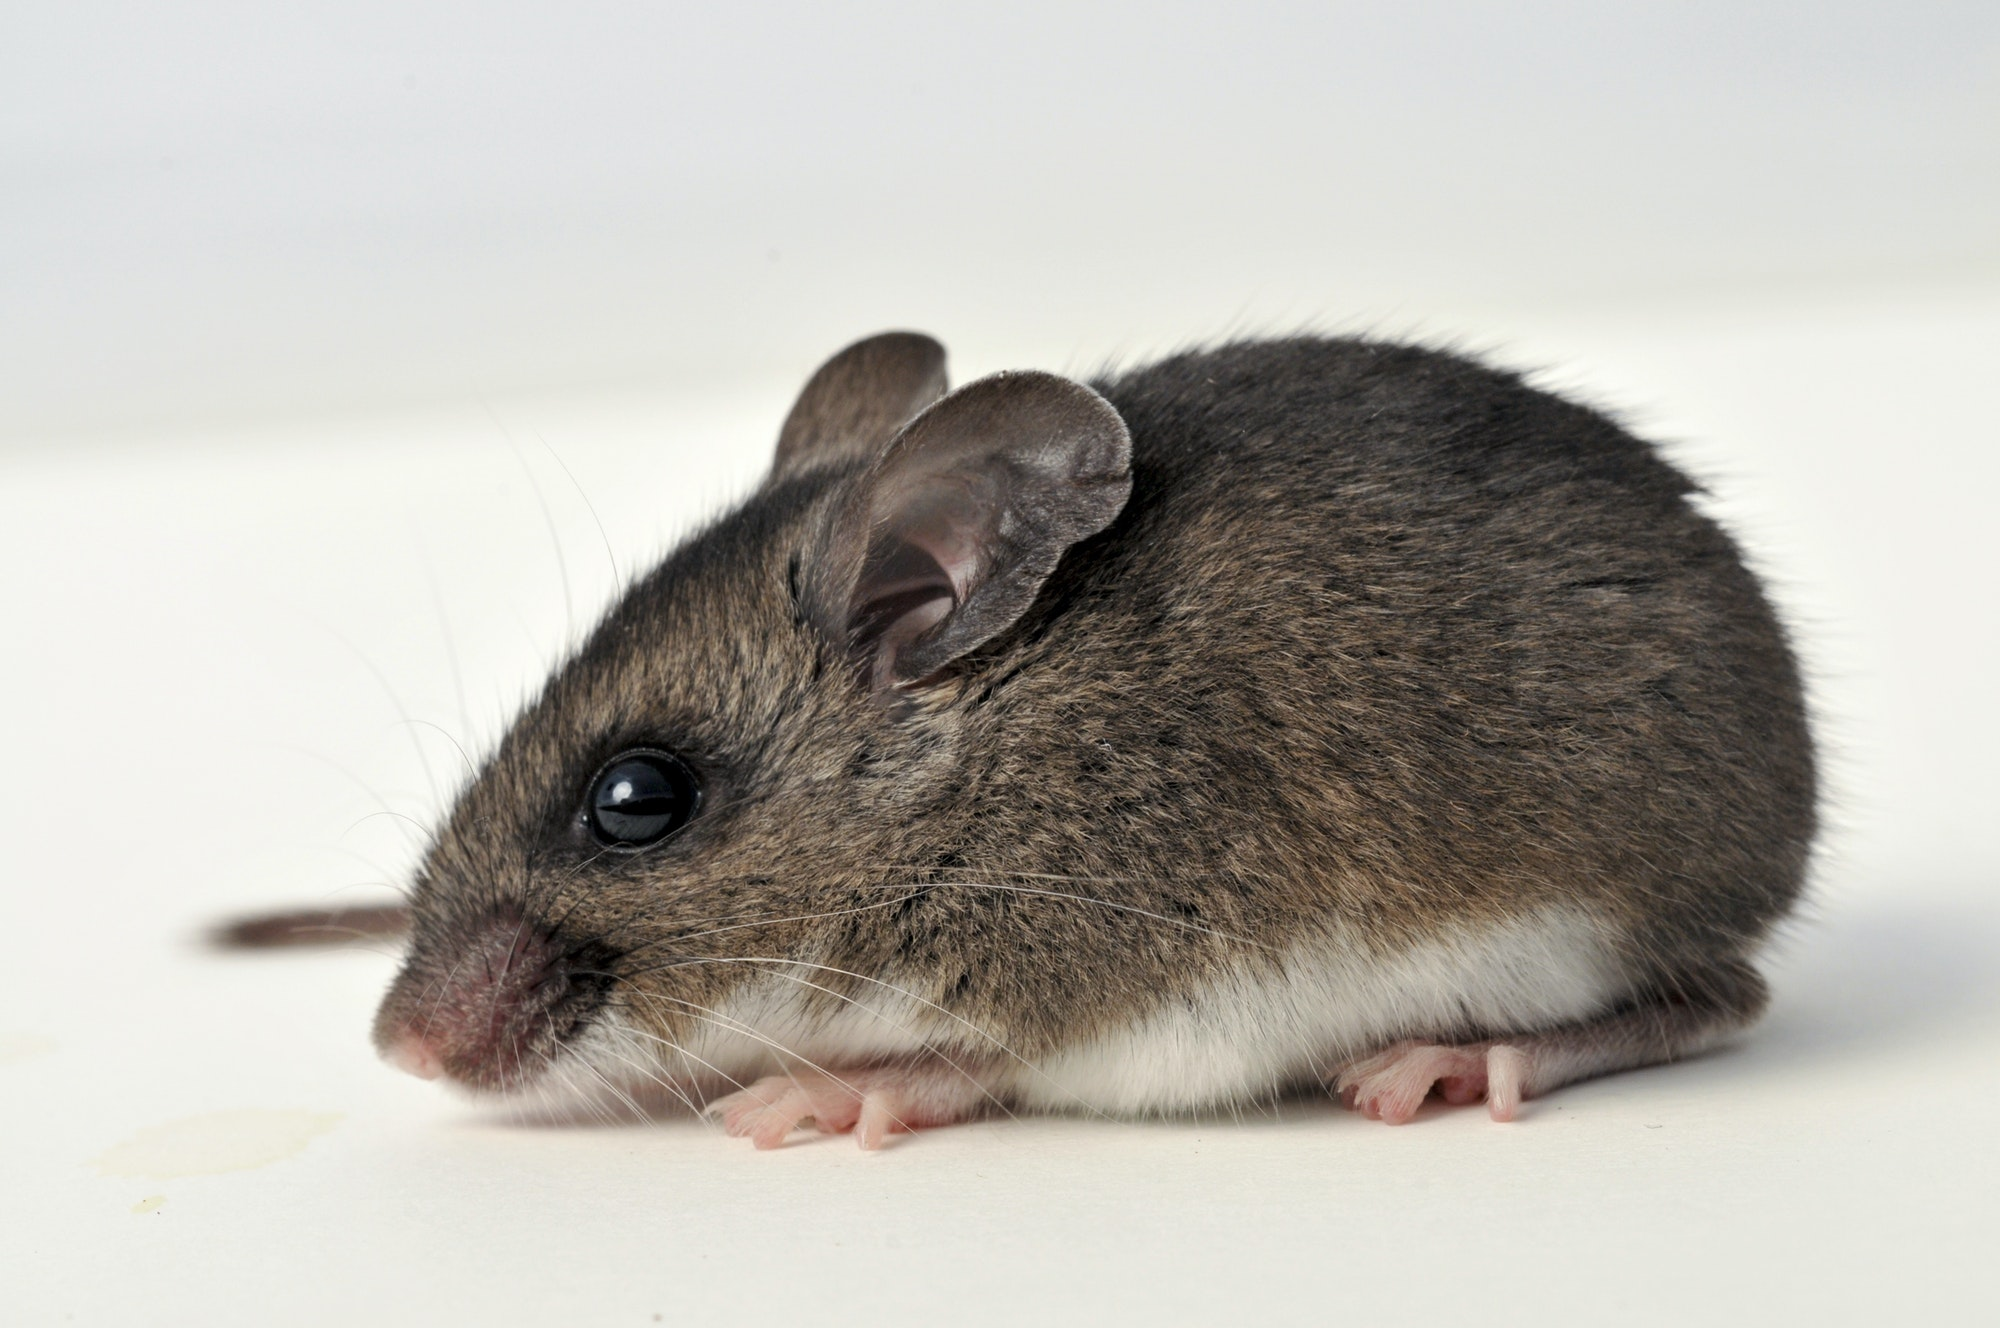 Sideview of a mouse. The mouse is mostly dark brown, but the belly of the mouse is white. The mouse has light pink feet, large black eyes, and long white whiskers.